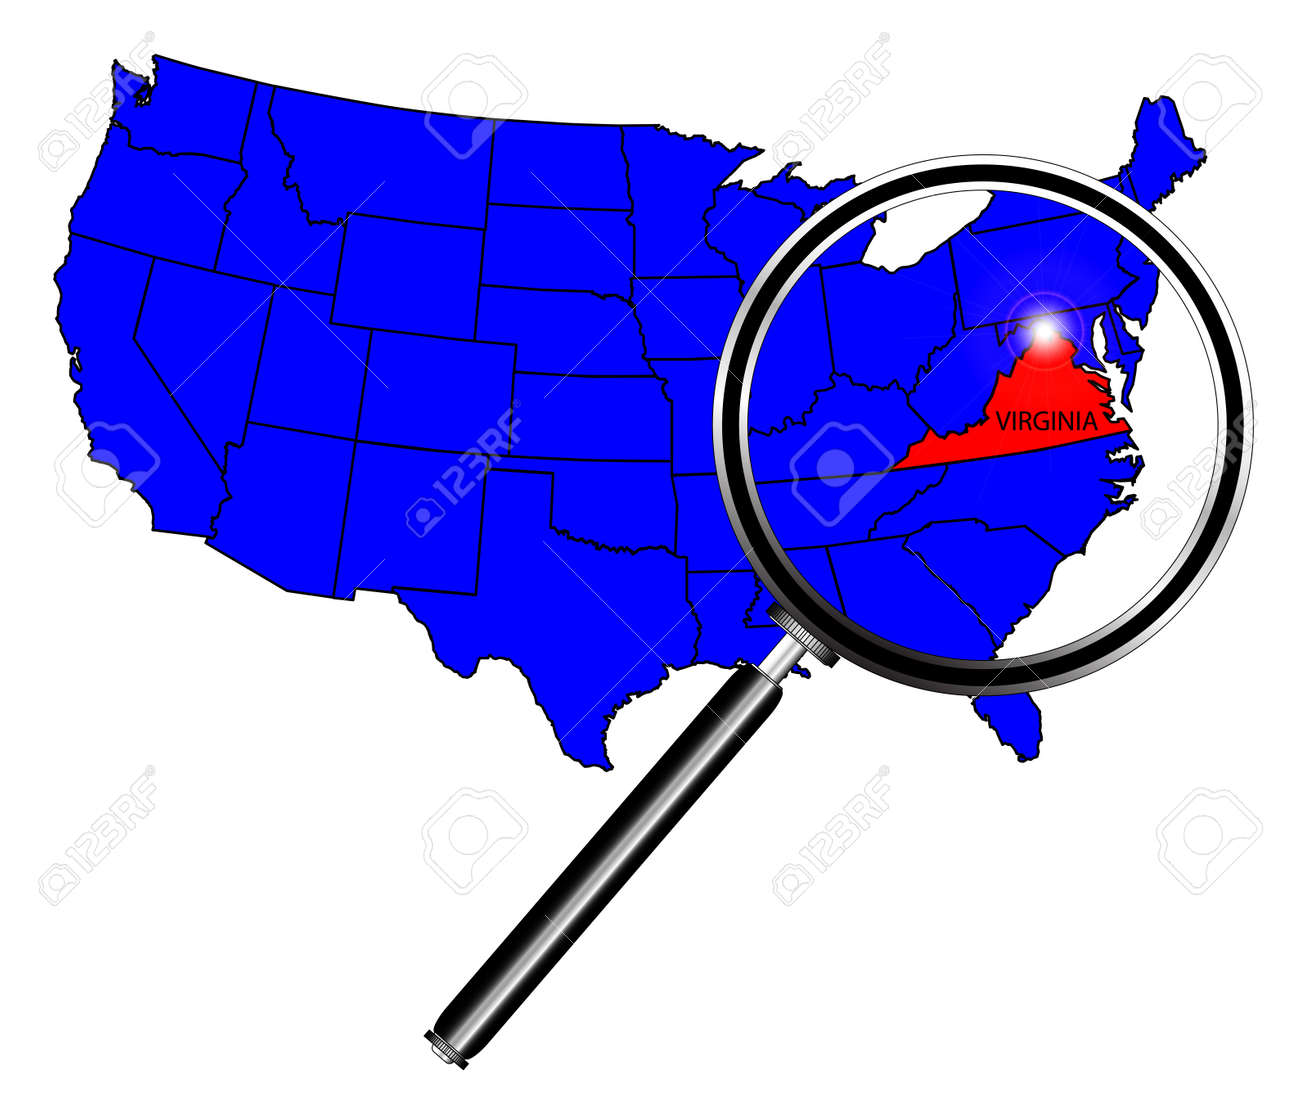 Virginia State Outline Set Into A Map Of The United States Of - Virginia state map united states